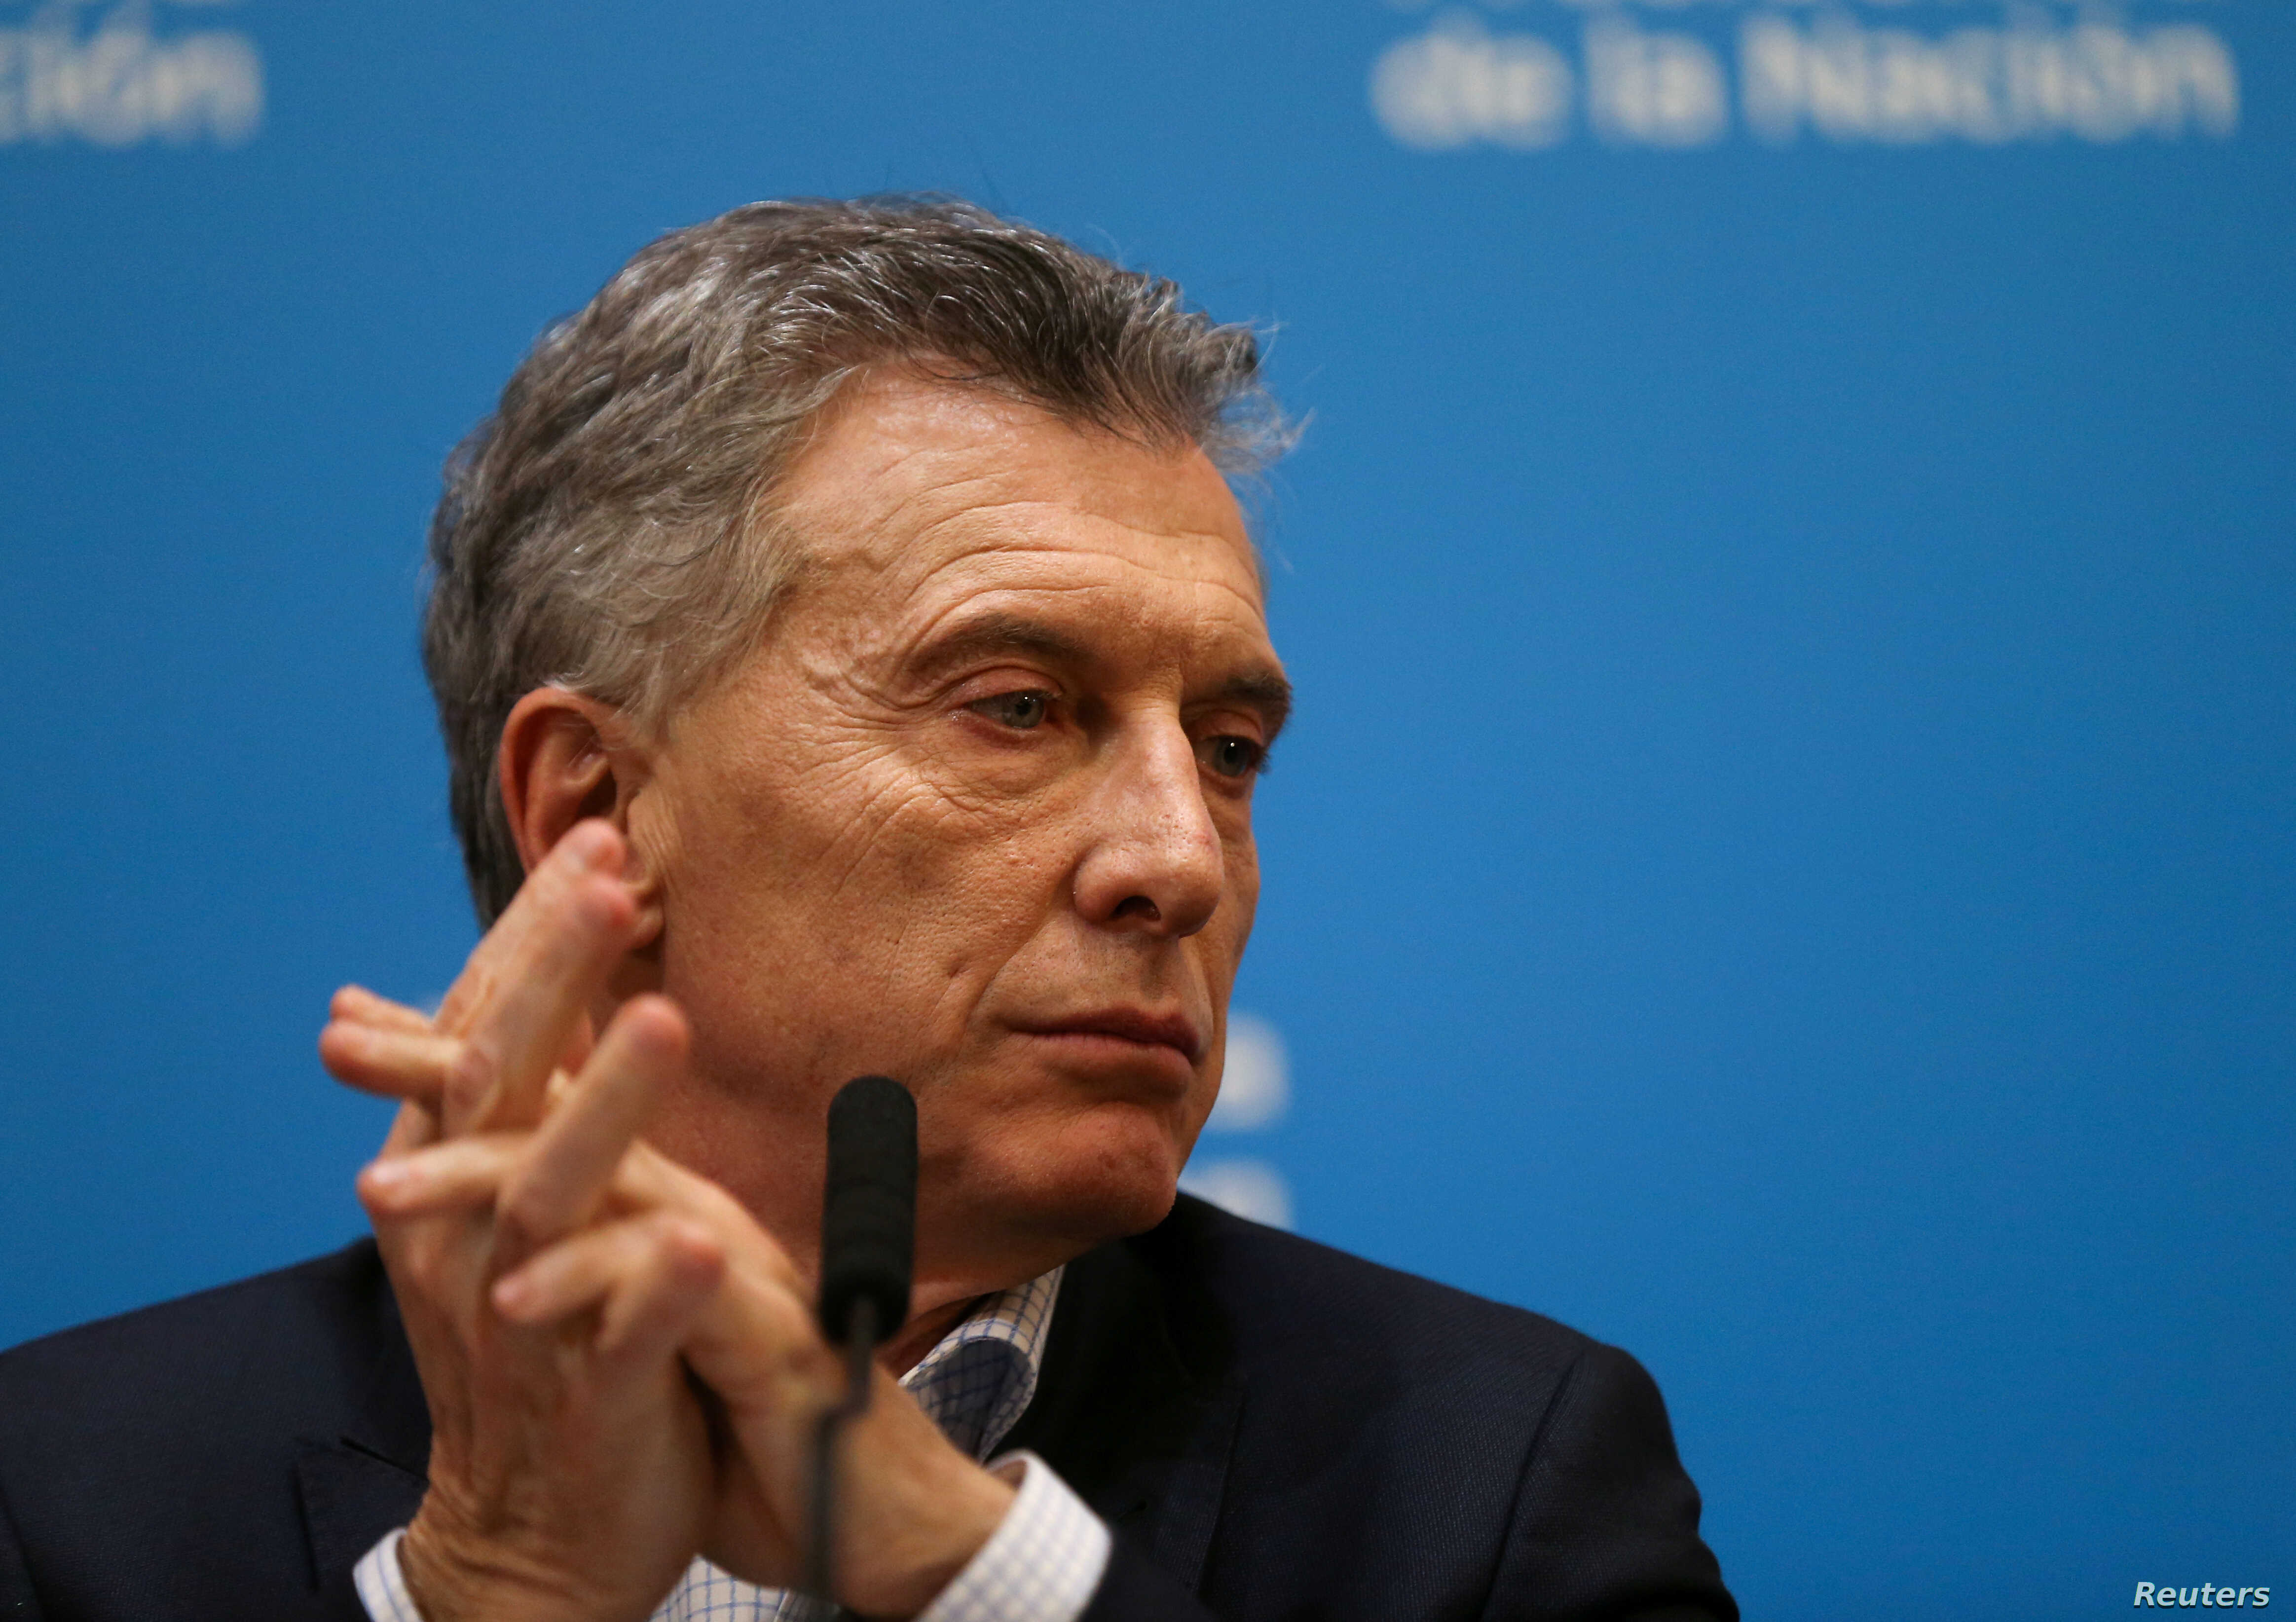 Argentina's President Mauricio Macri looks on during a news conference after the presidential primaries, in Buenos Aires, Argentina, Aug. 12, 2019.